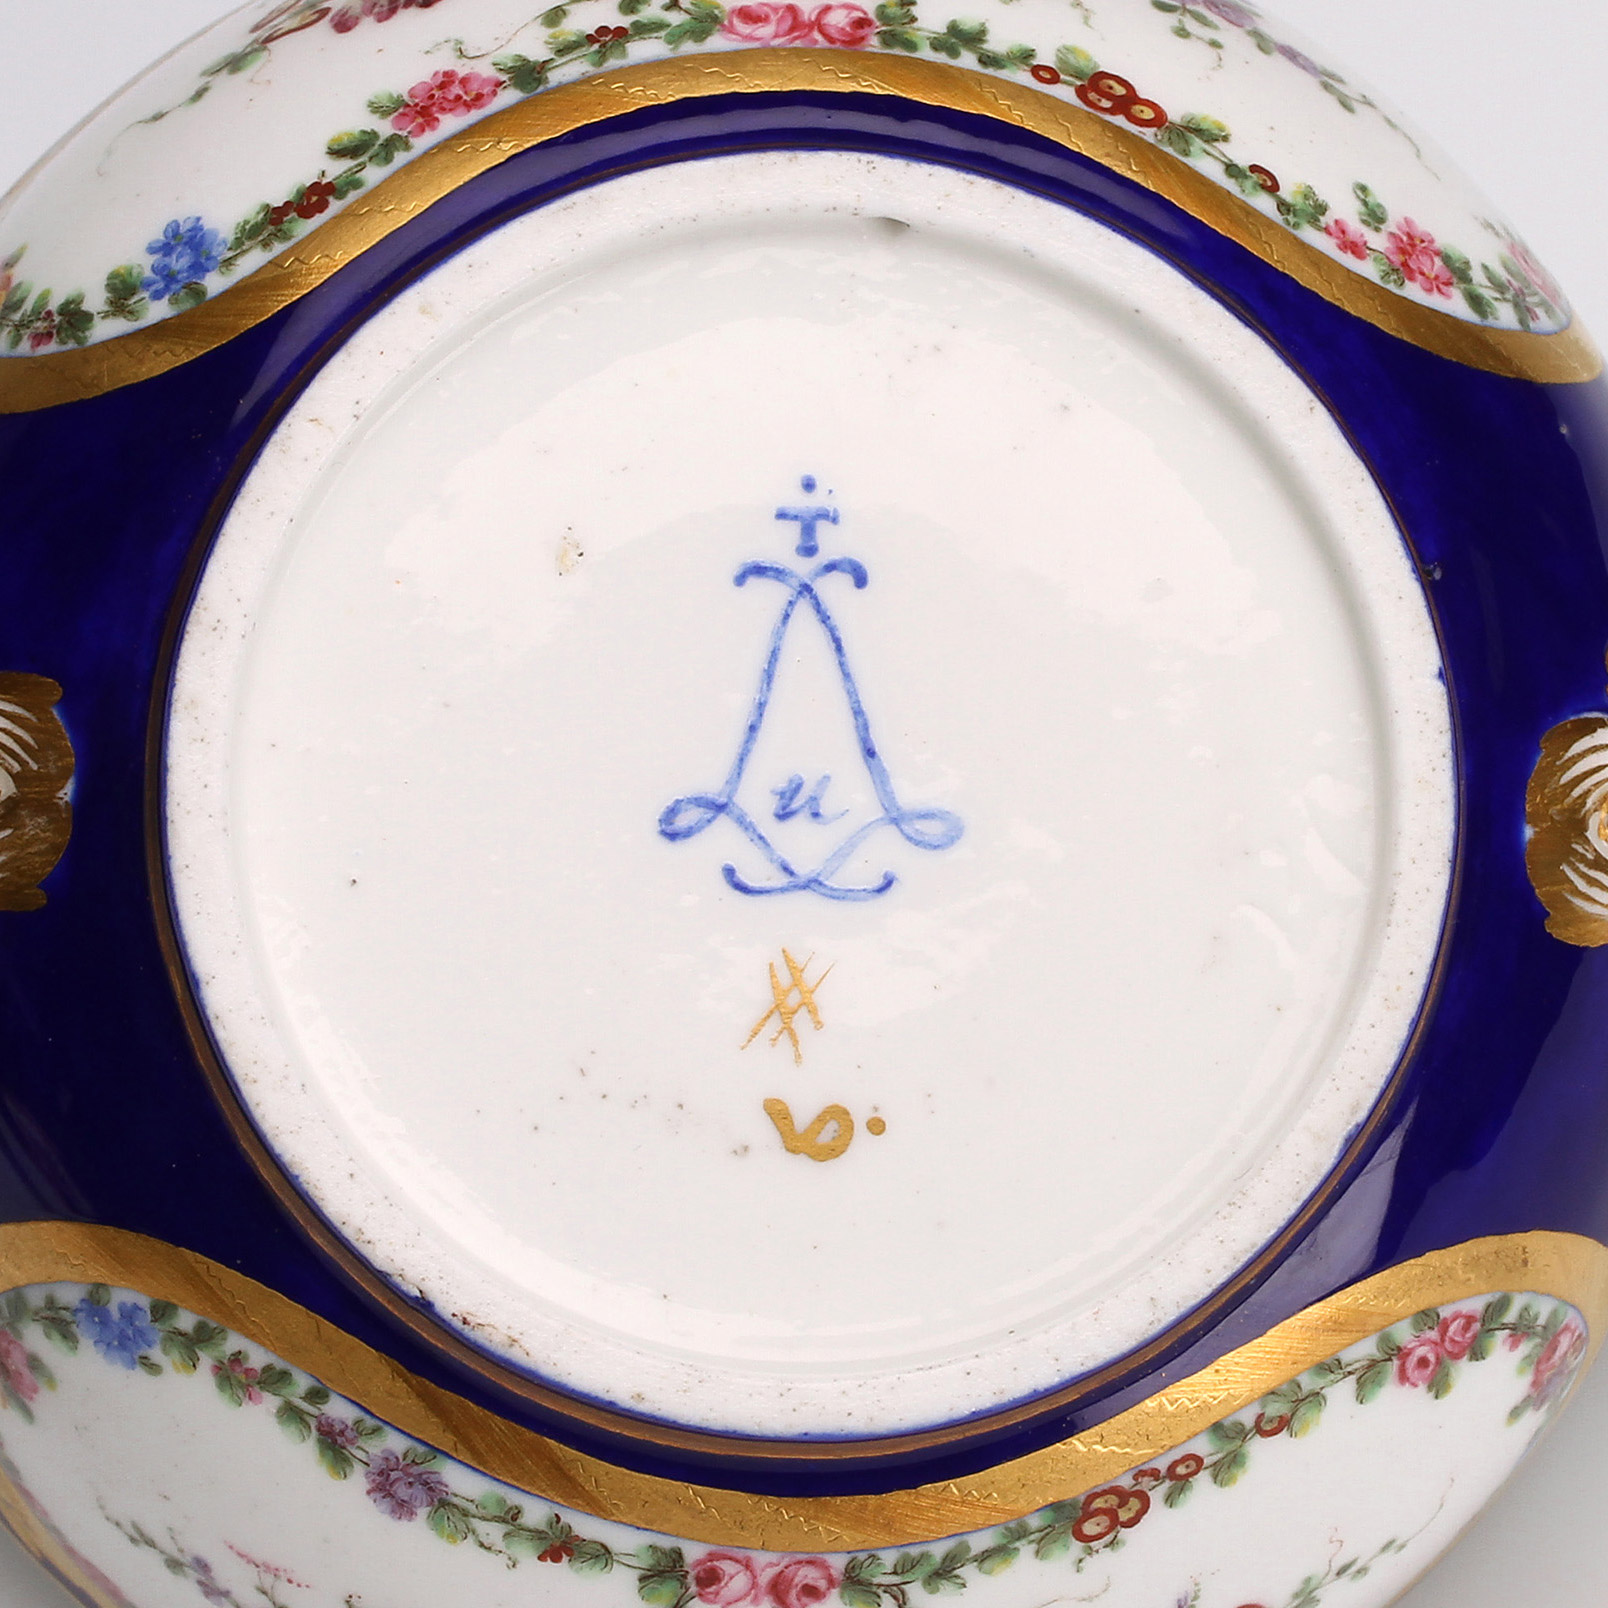 Marks - The French Porcelain Society